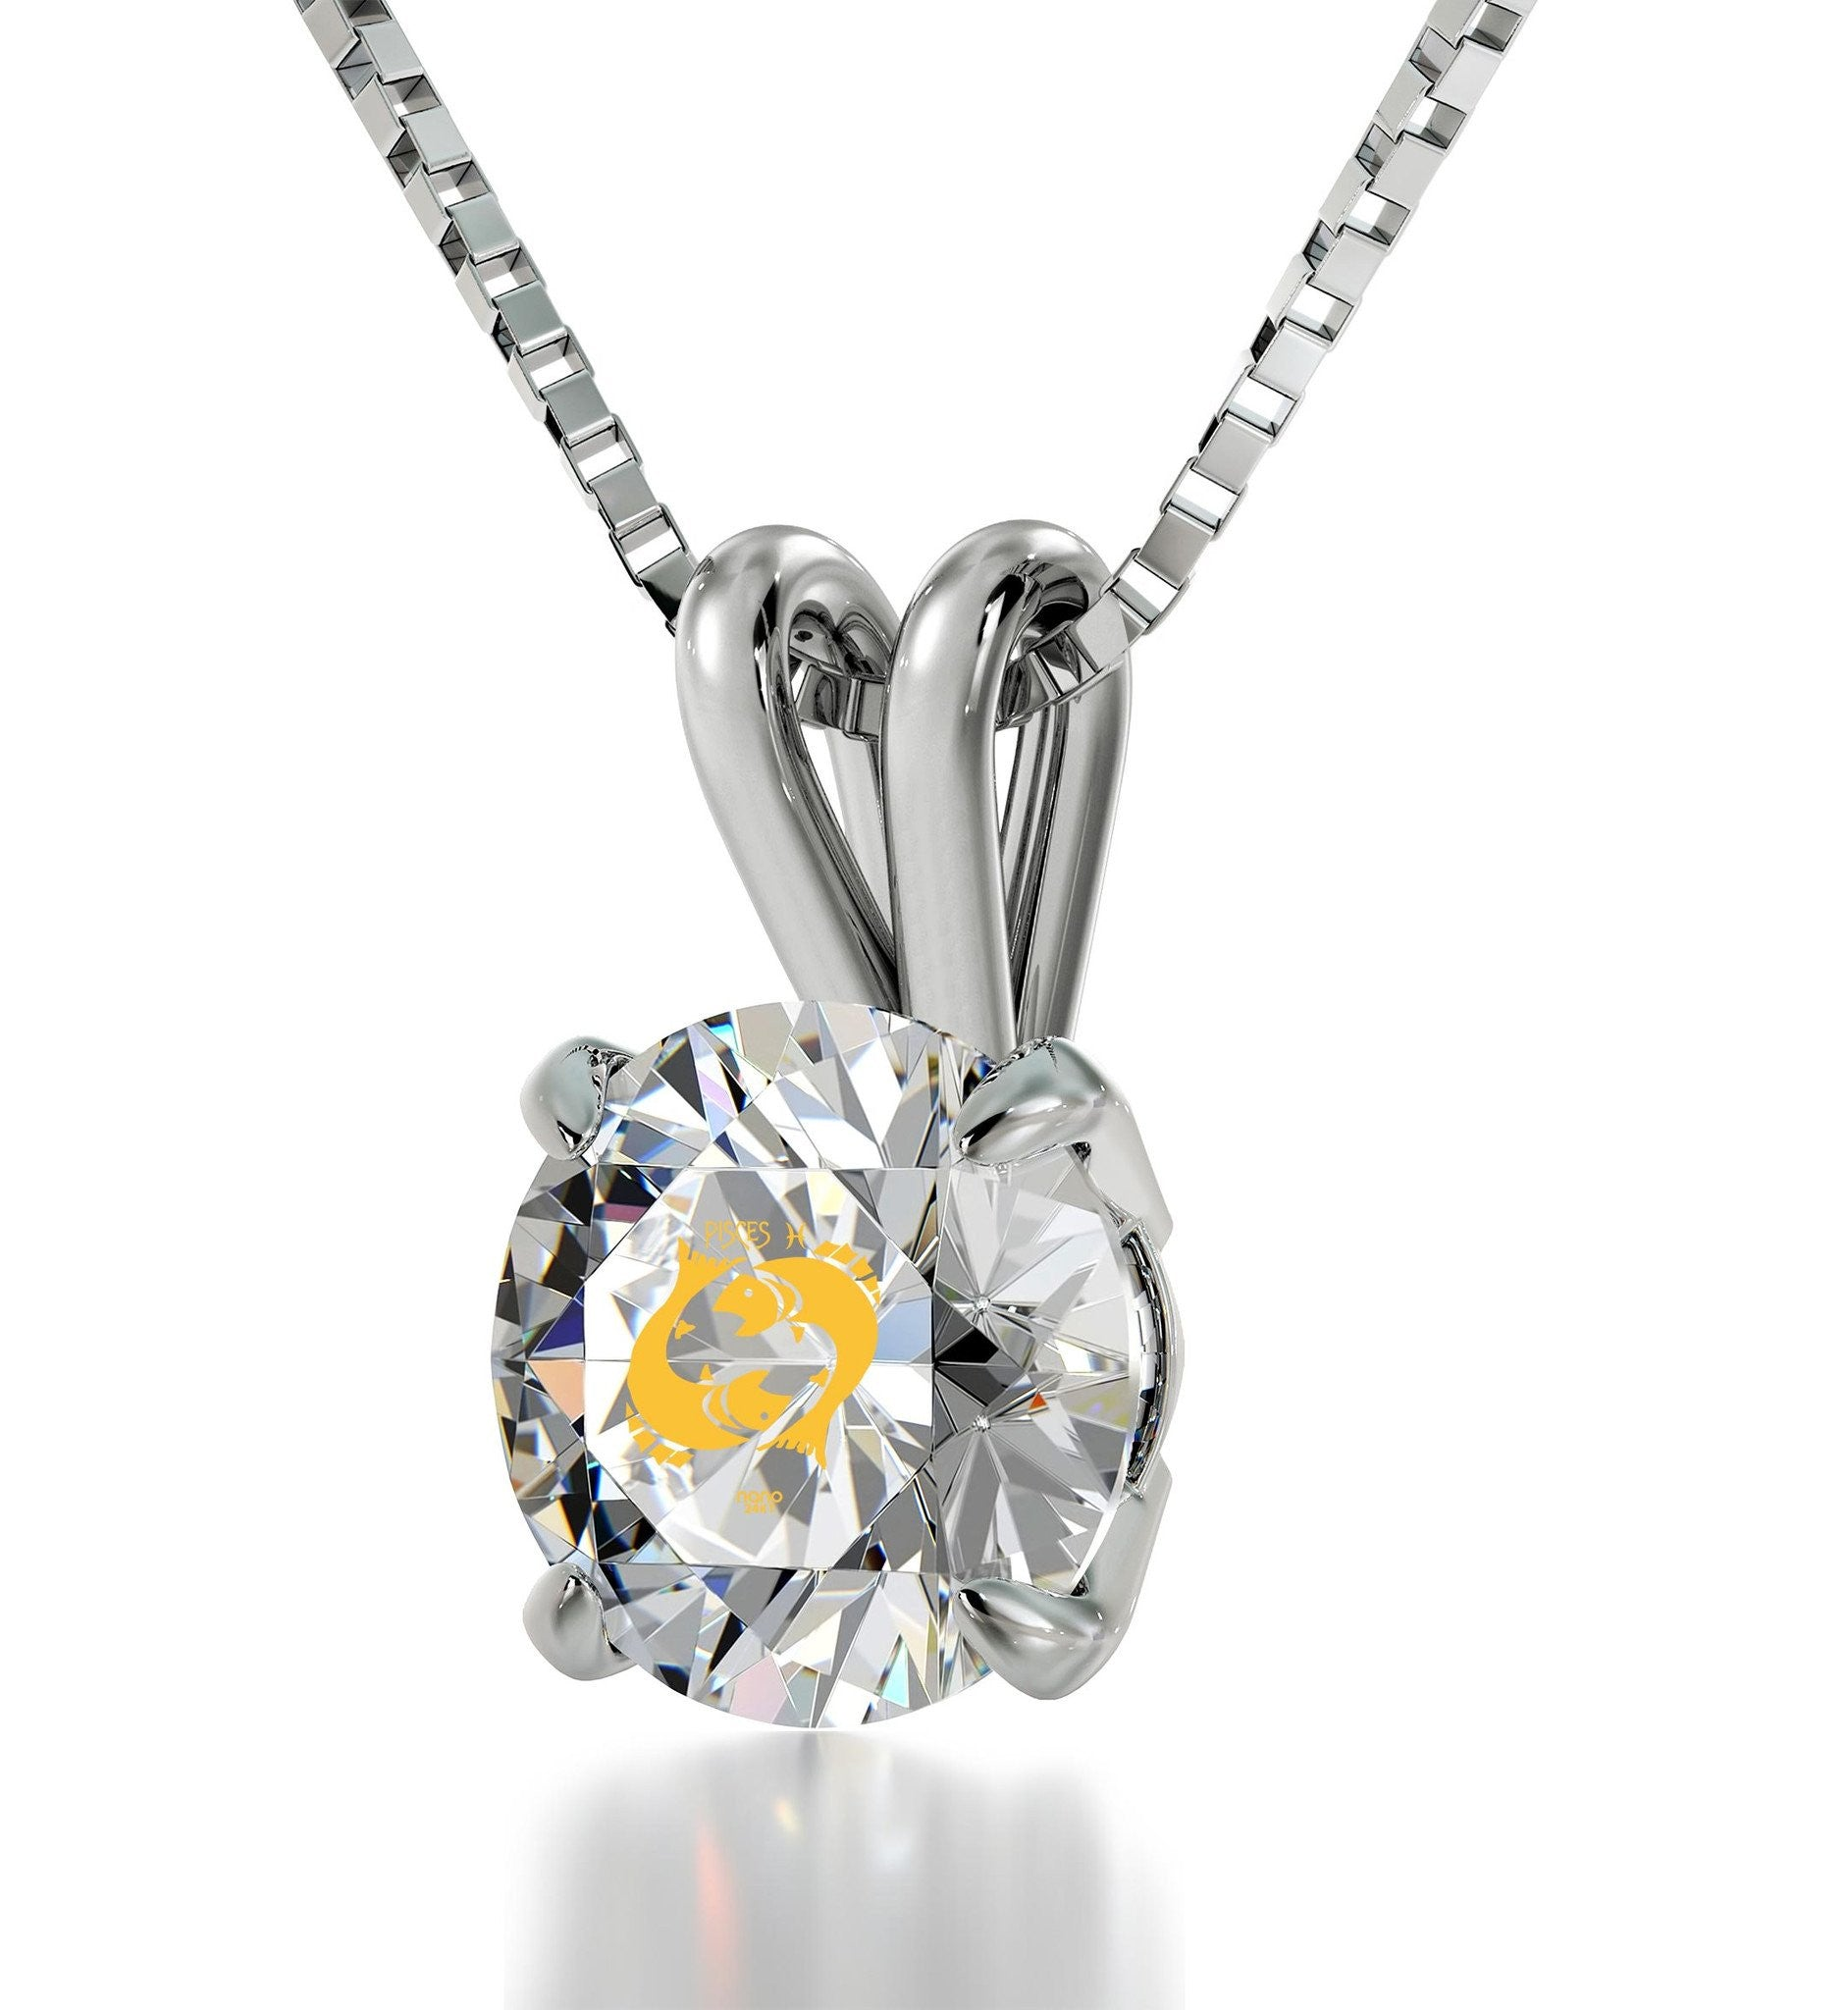 """CuteNecklaces for Her, PiscesSign in 24k, CrystalStoneJewelry, ValentinesPresents for Girlfriend"""